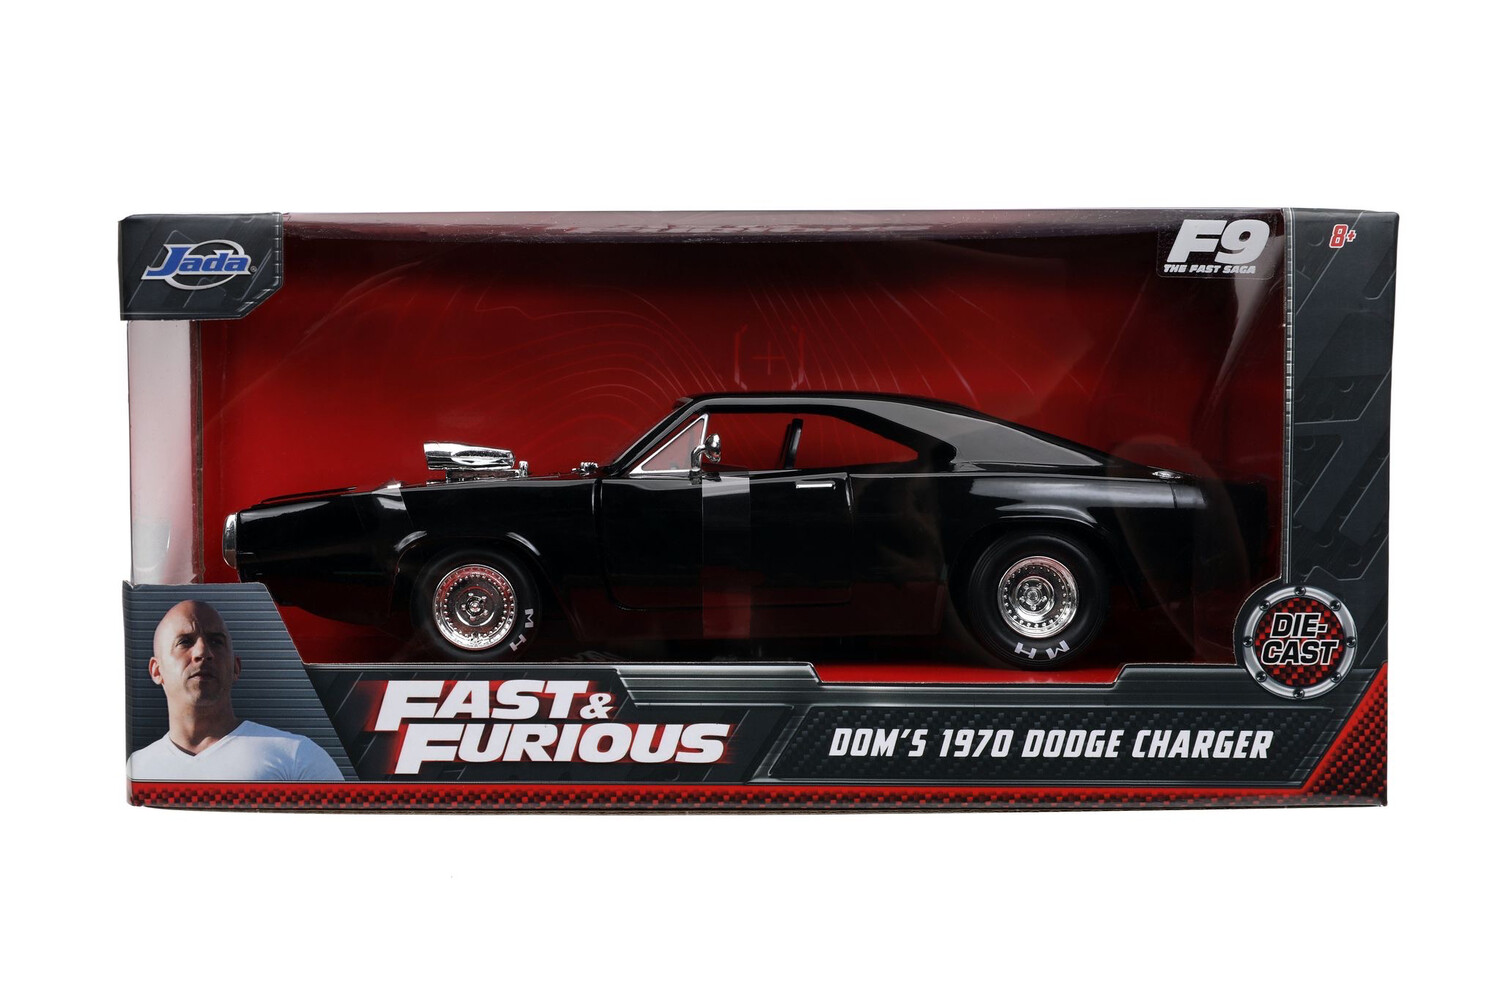 Dom's Dodge Charger R/T F&F 9